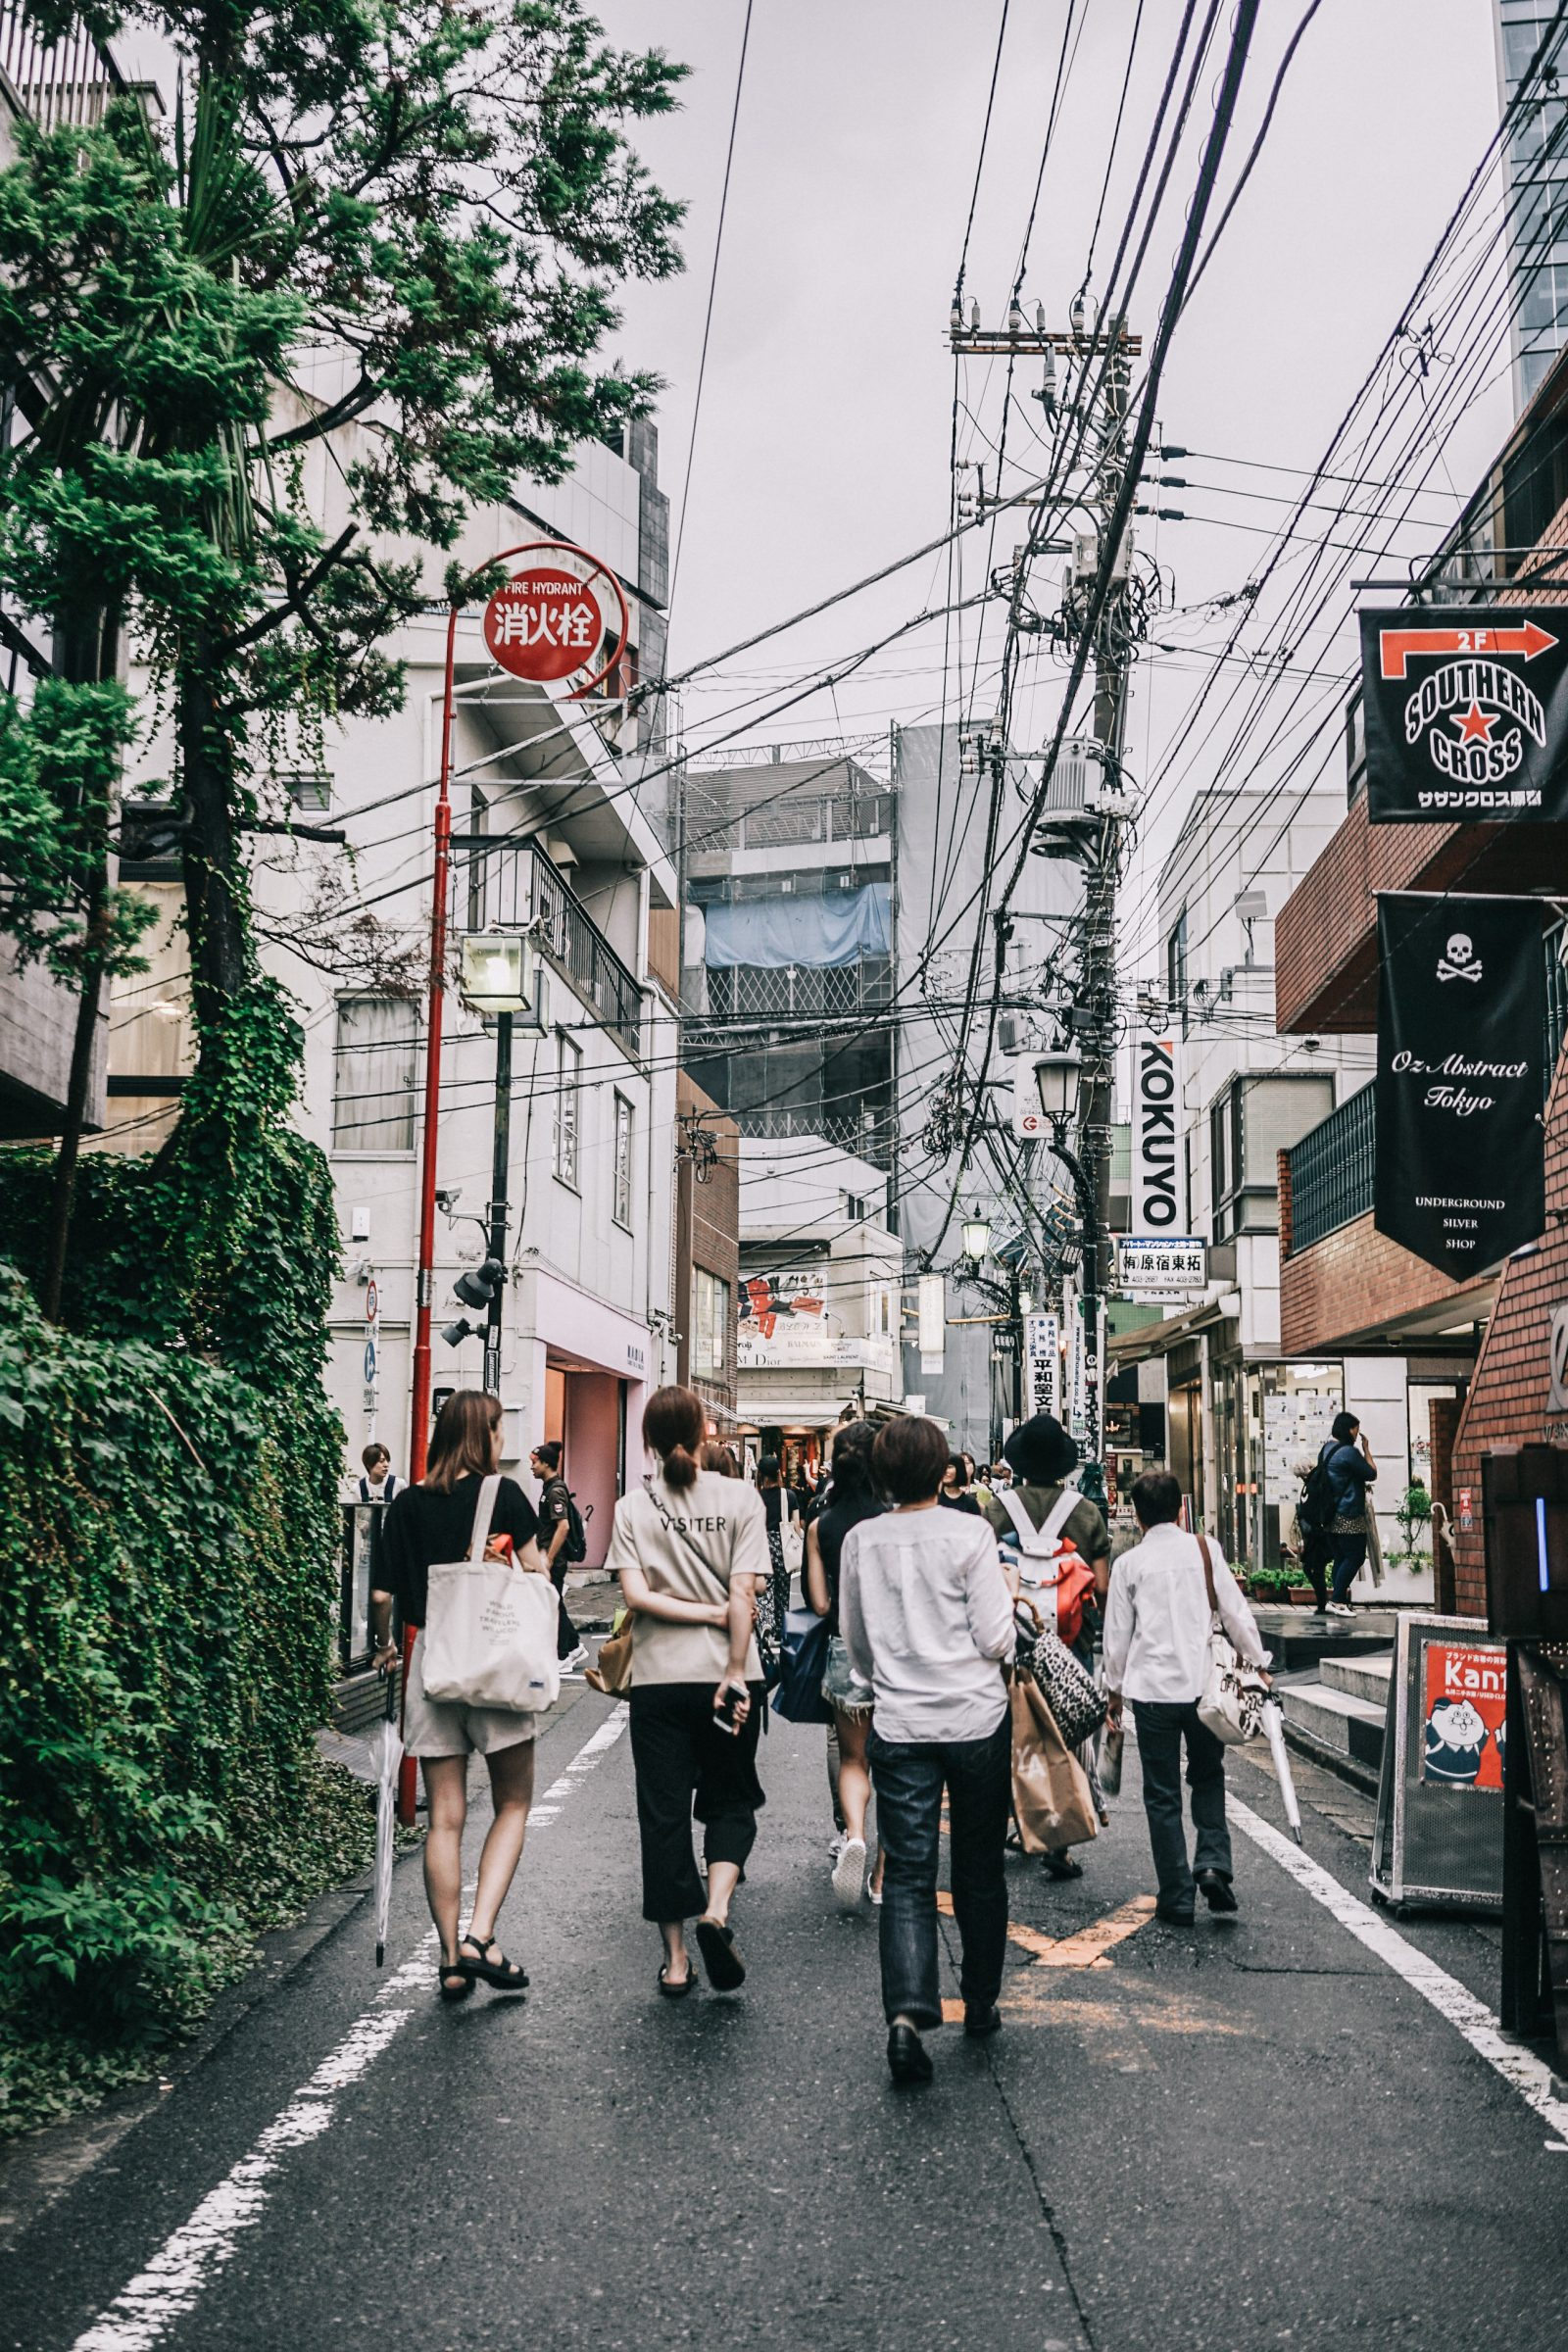 Tokyo_Travel_Guide-Fish_Market-Harajuku-Levis_Denim_Skirt-Off_The_Shoulders_Top-YSL_Sneakers-Outfit-Collage_Vintage-Street_Style-175